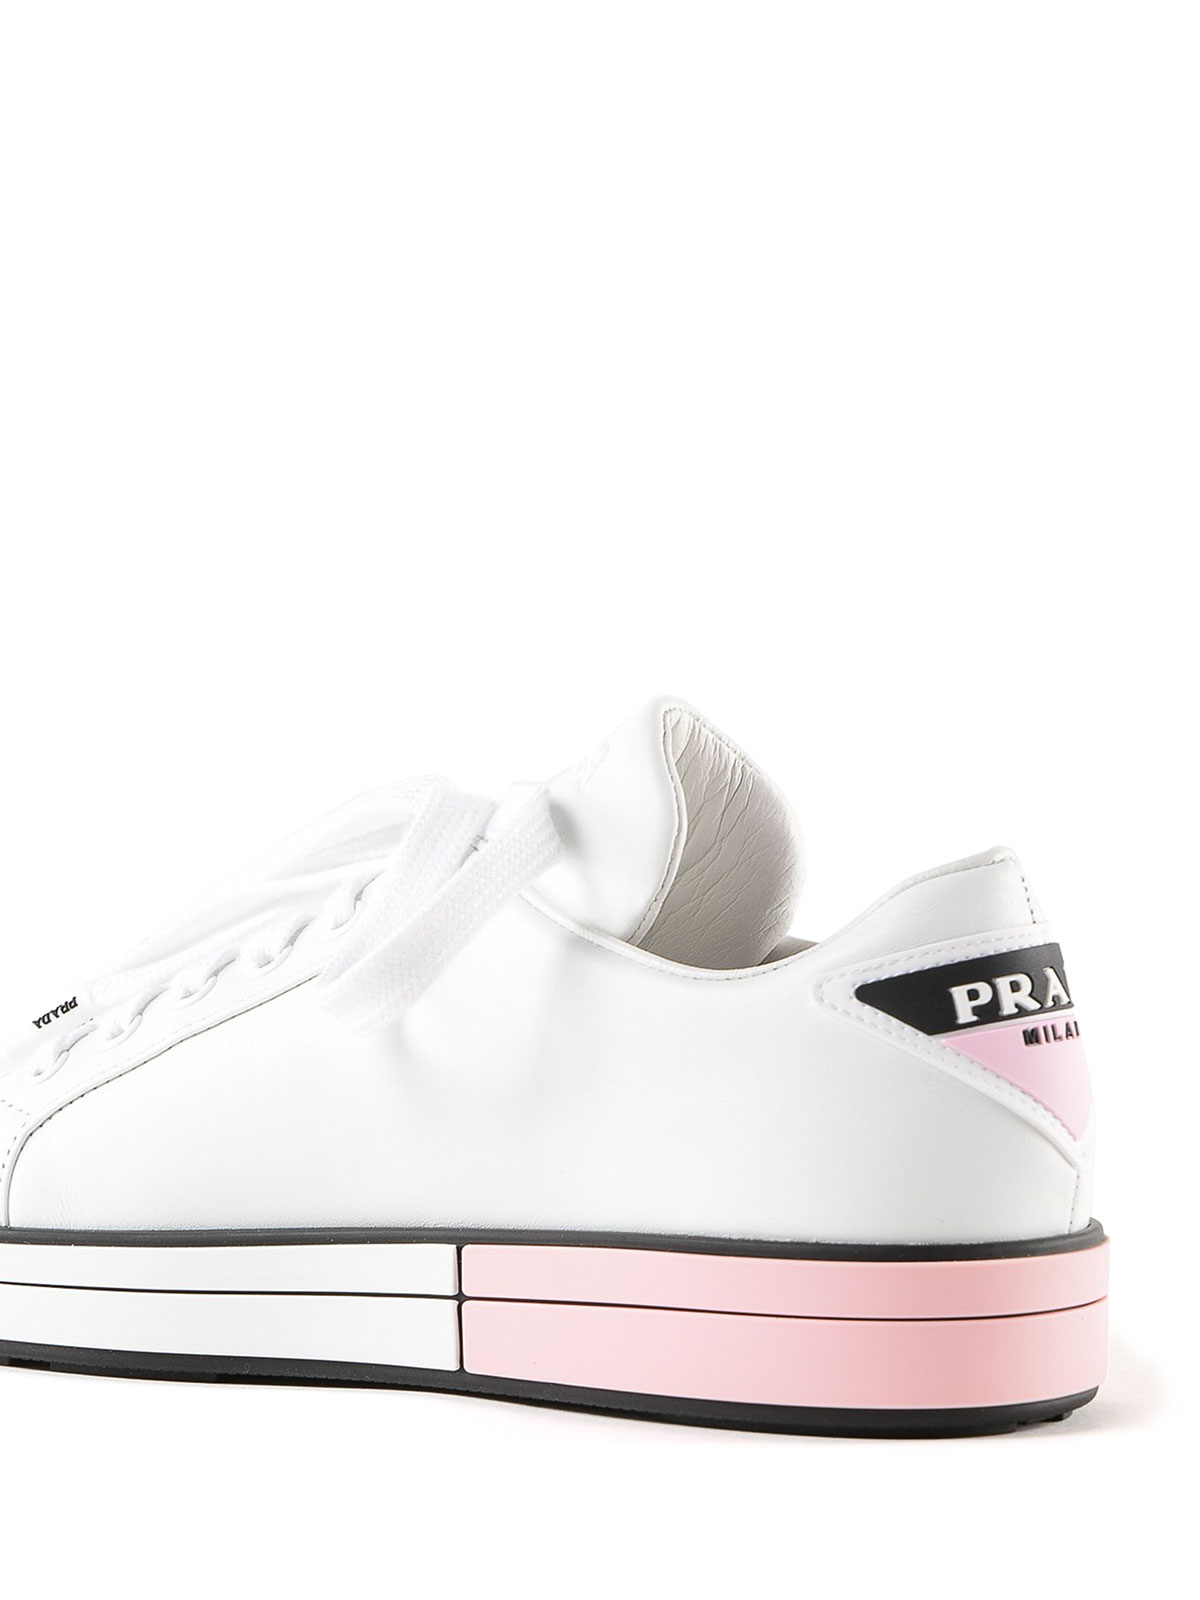 White and pink sole leather sneakers